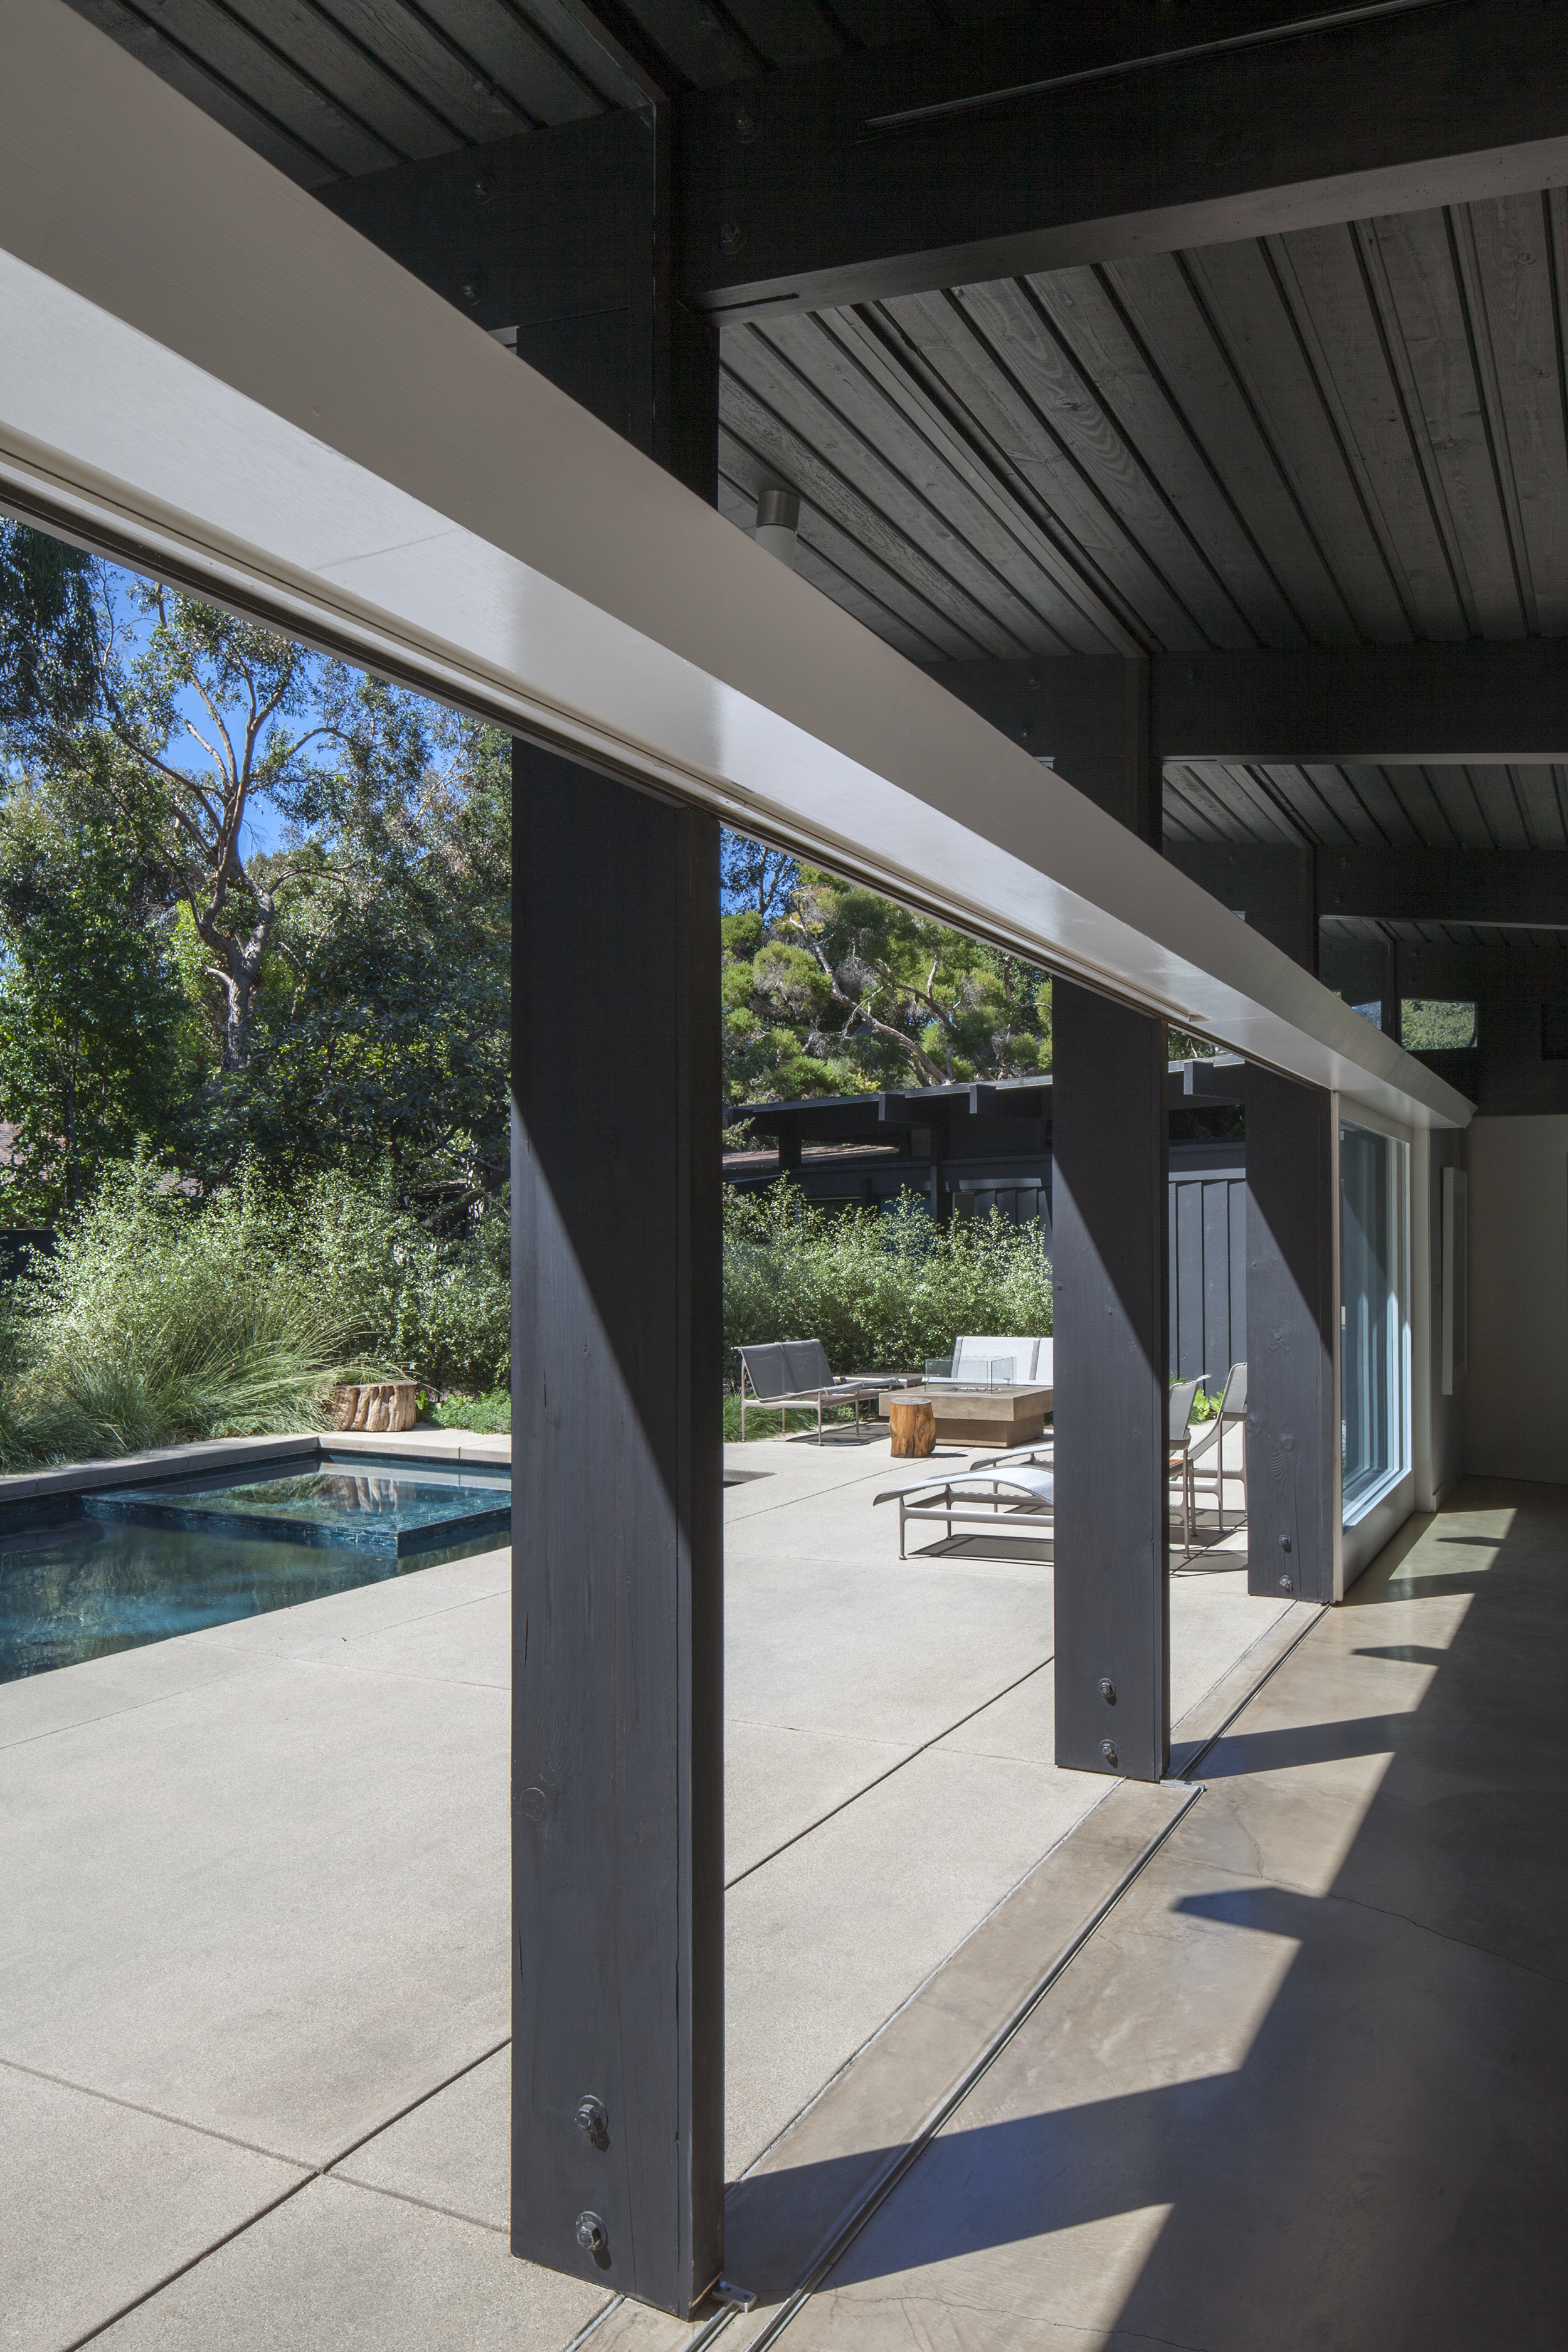 Sleek modern patio shade structure view view of minimal custom built pool - Rustic Canyon - Los Angeles garden design by Campion Walker Landscapes.jpg